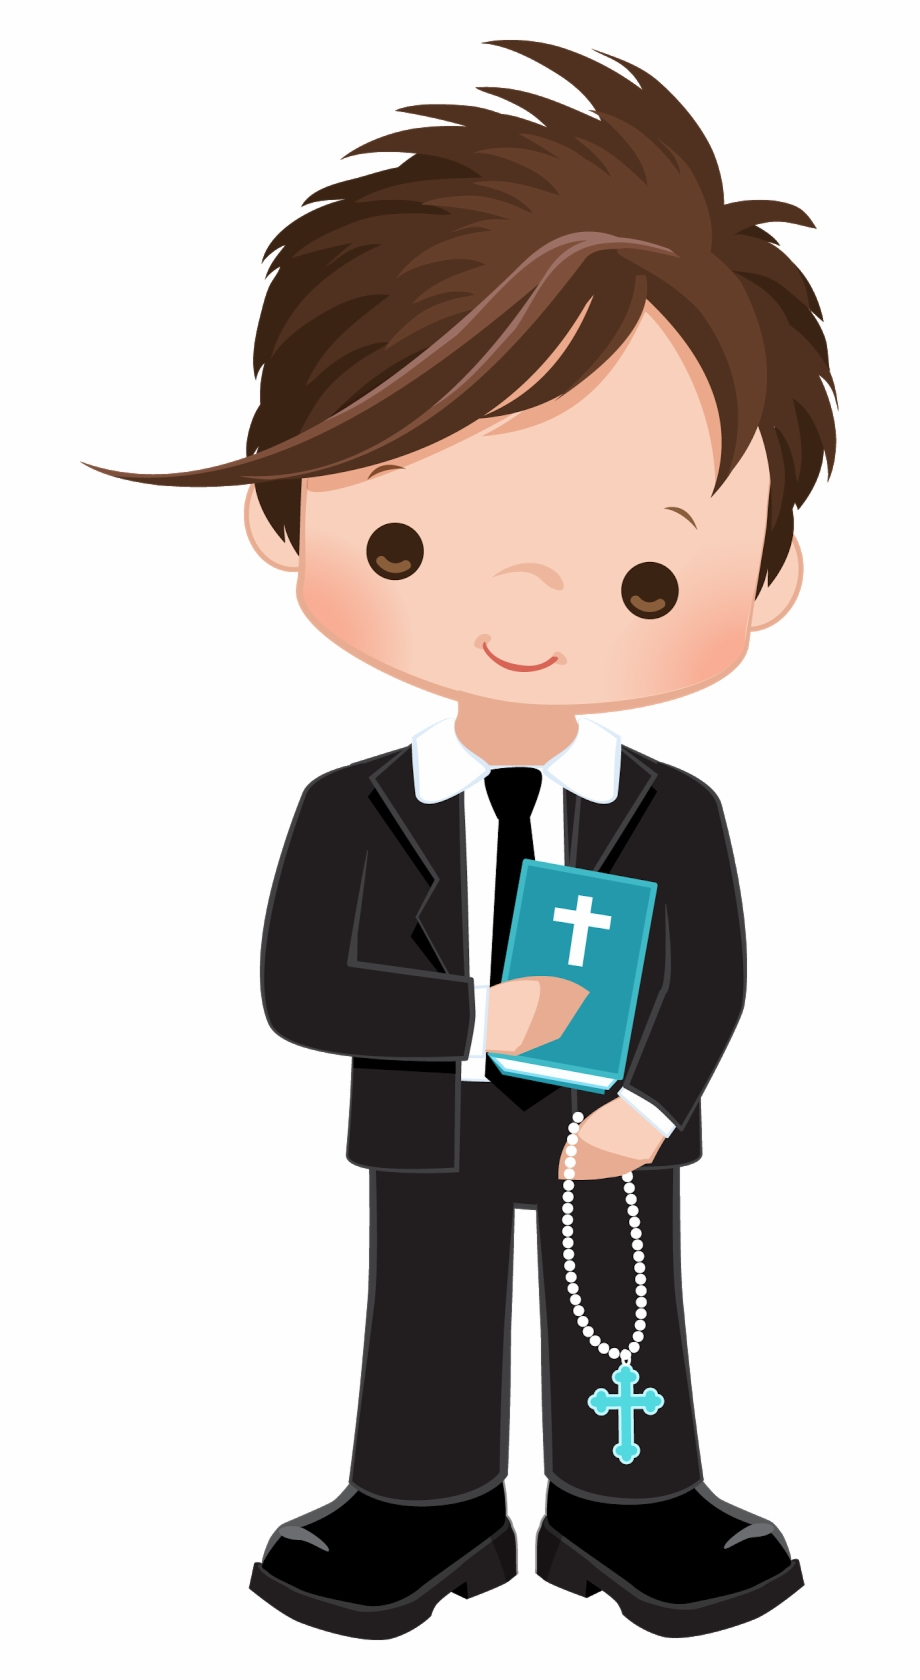 Boy First Communion Clip Art Free PNG Images & Clipart Download.